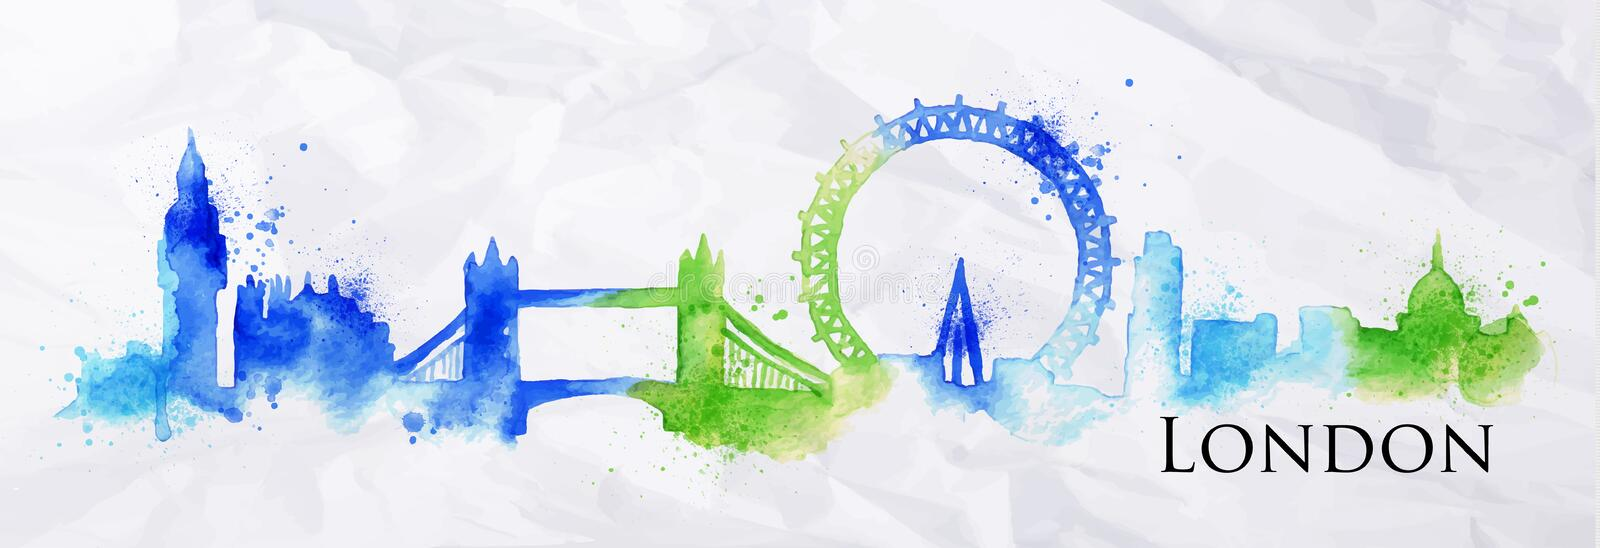 Silhouette watercolor London royalty free illustration